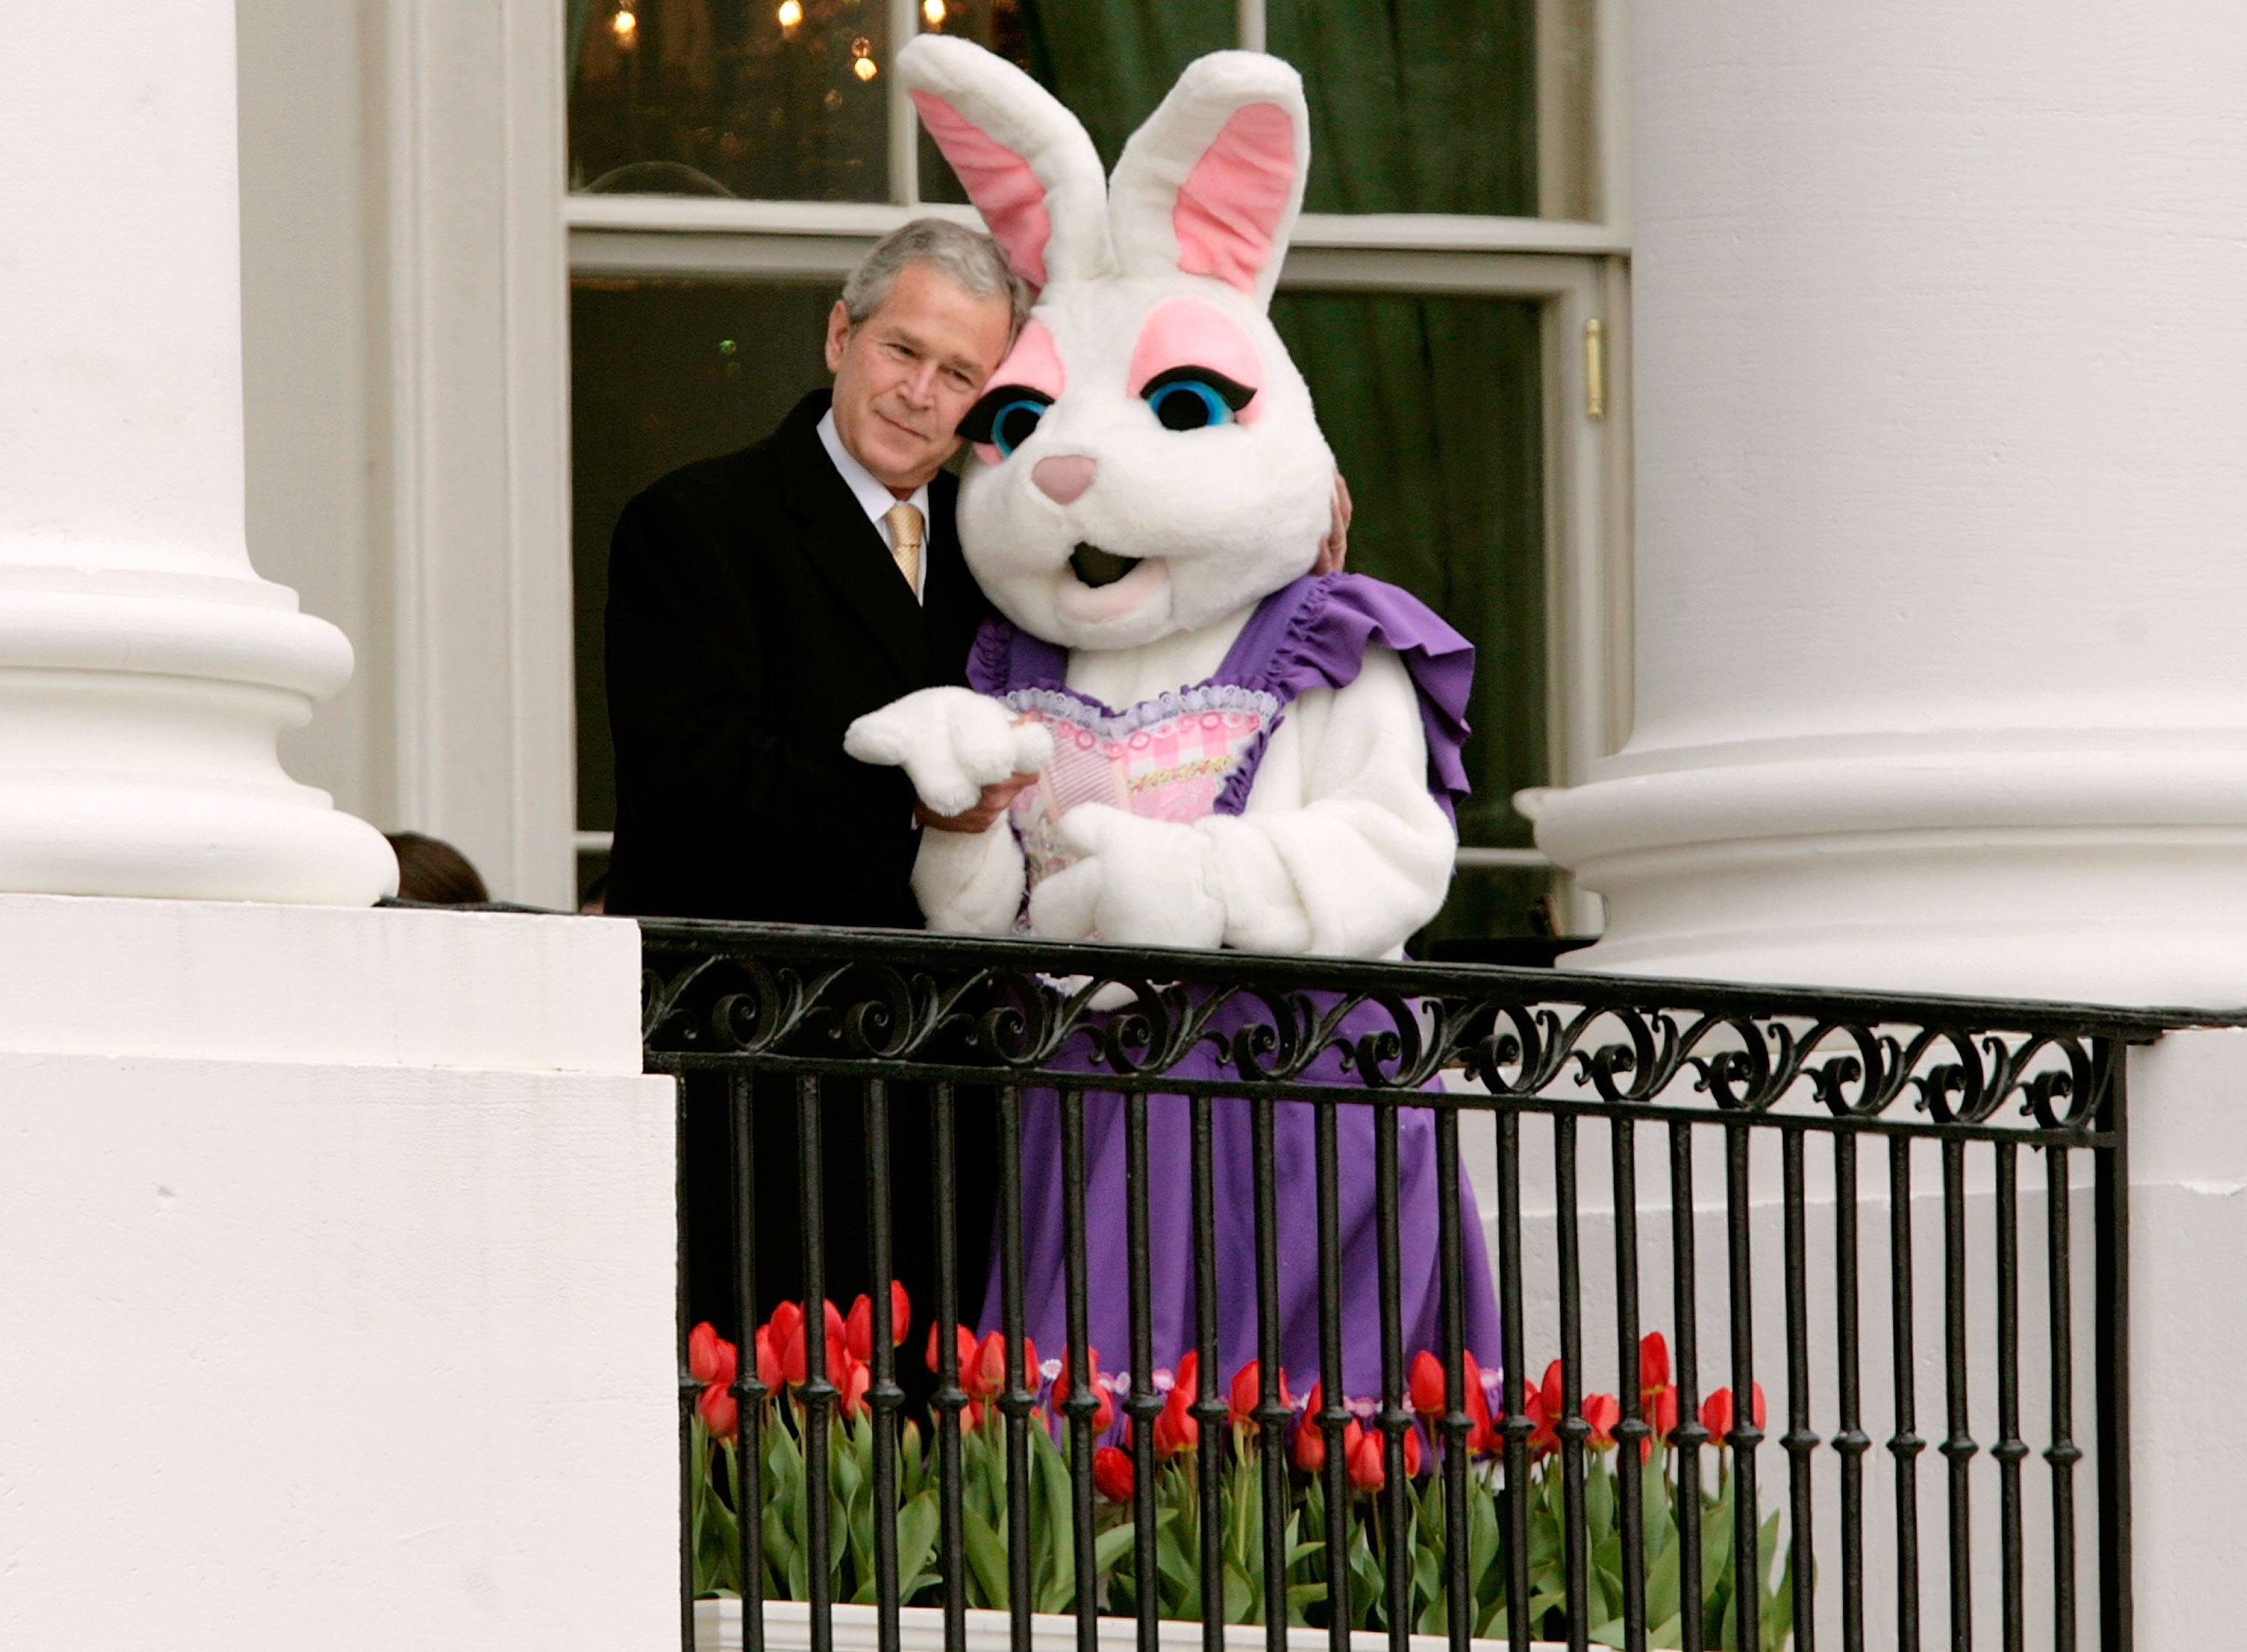 George W. Bush hugs the Easter Bunny